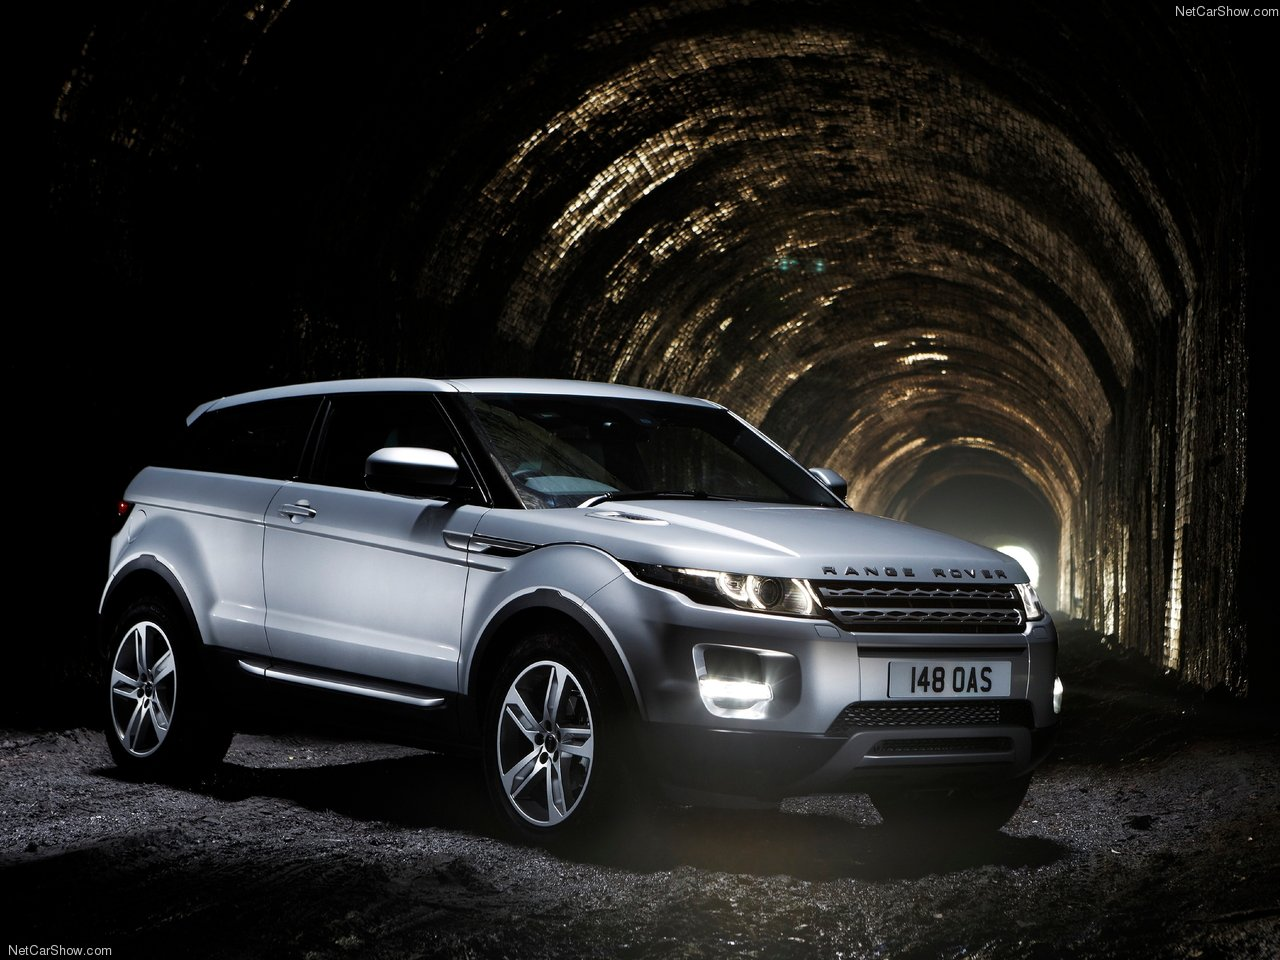 Land Rover Range Rover Evoque photo 87436